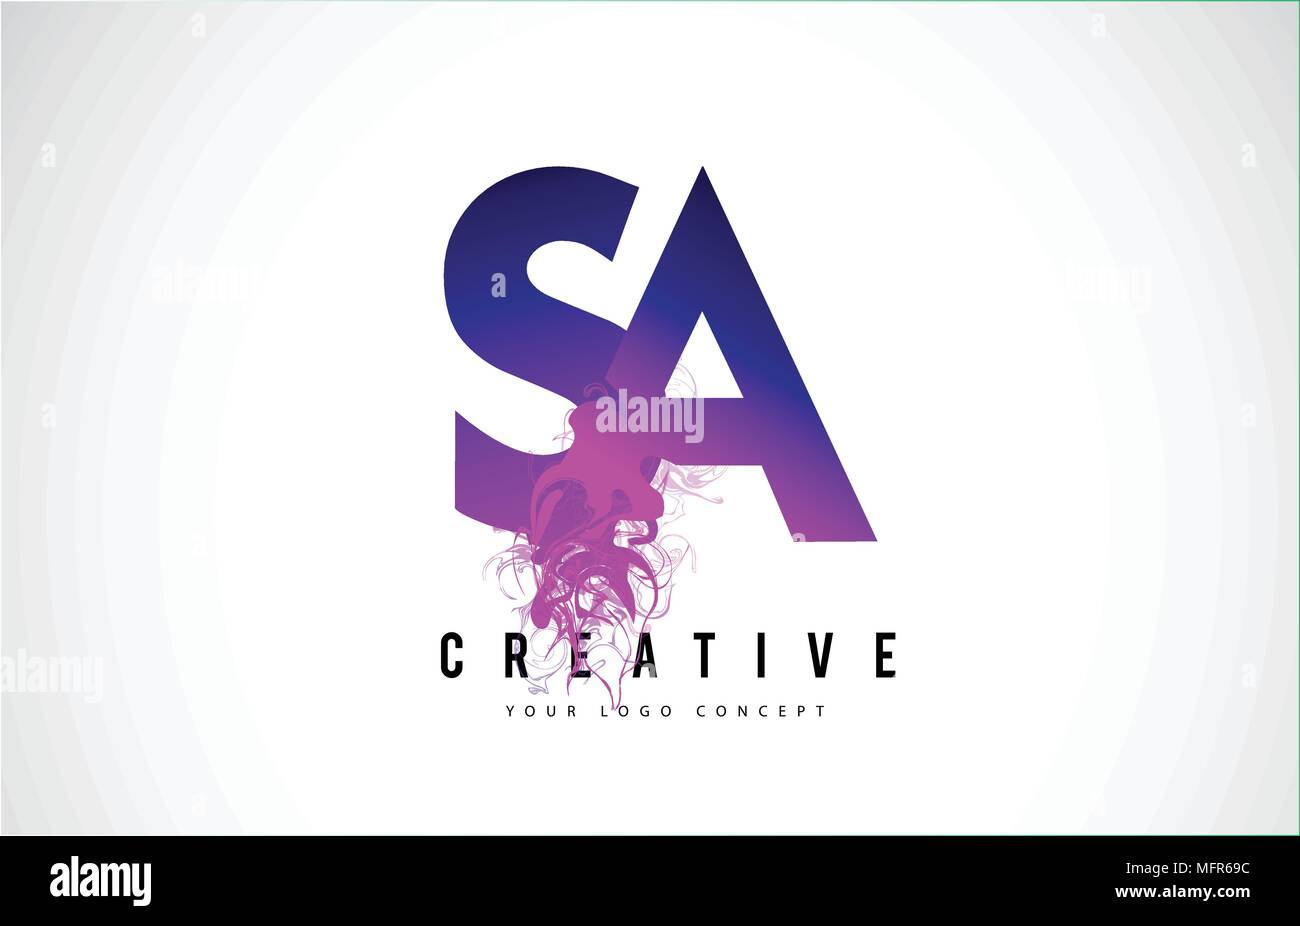 SA S A Purple Letter Logo Design with Creative Liquid Effect Flowing Vector Illustration. Stock Vector